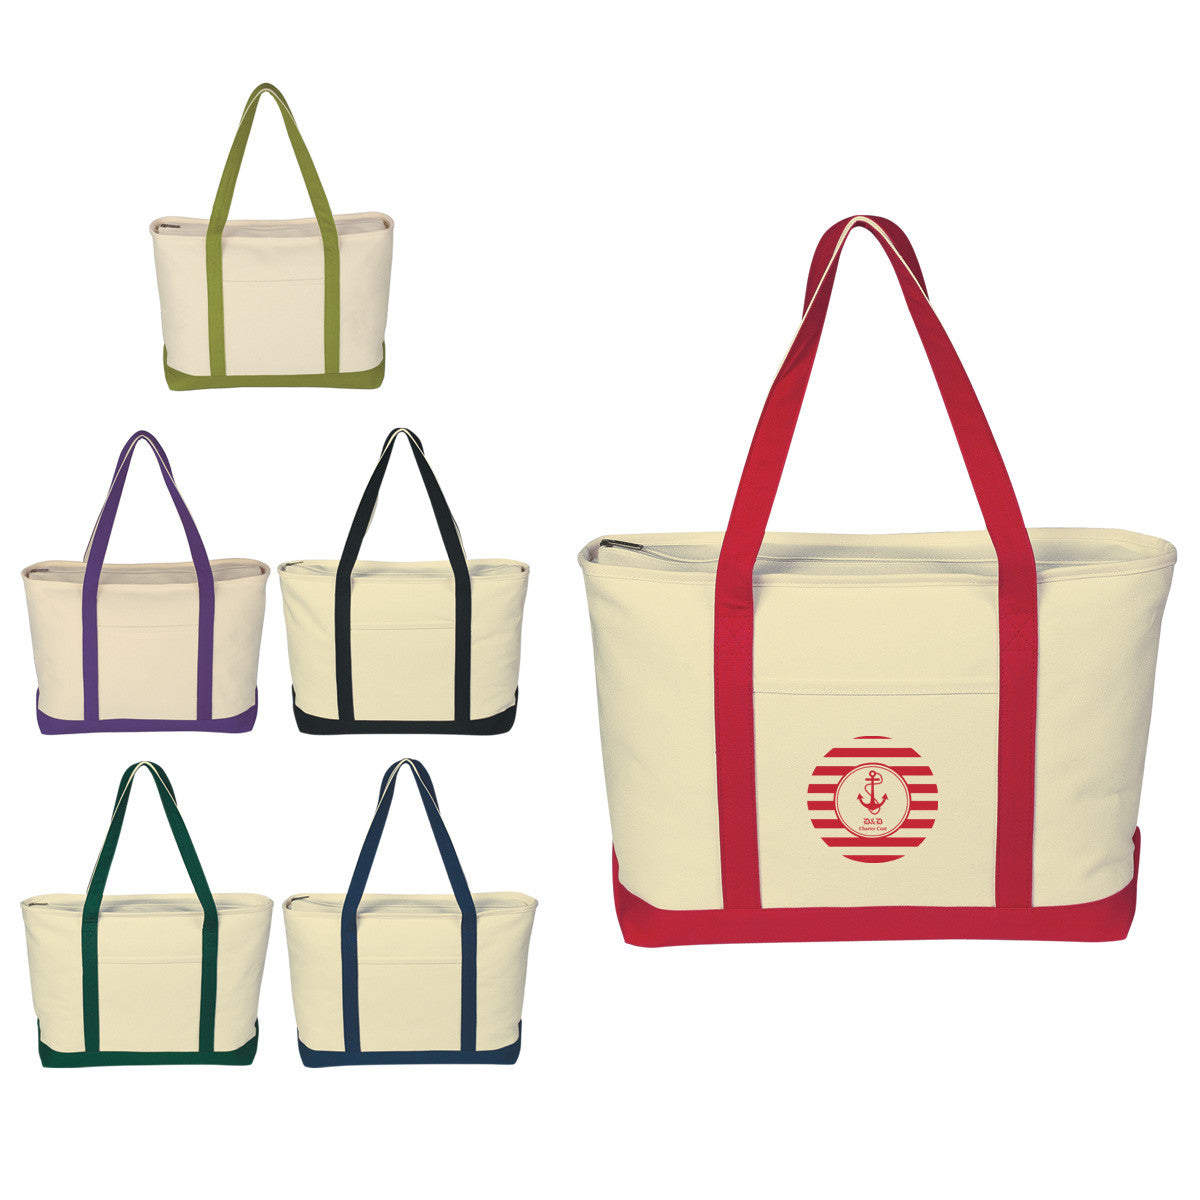 Deluxe Canvas Tote Bags